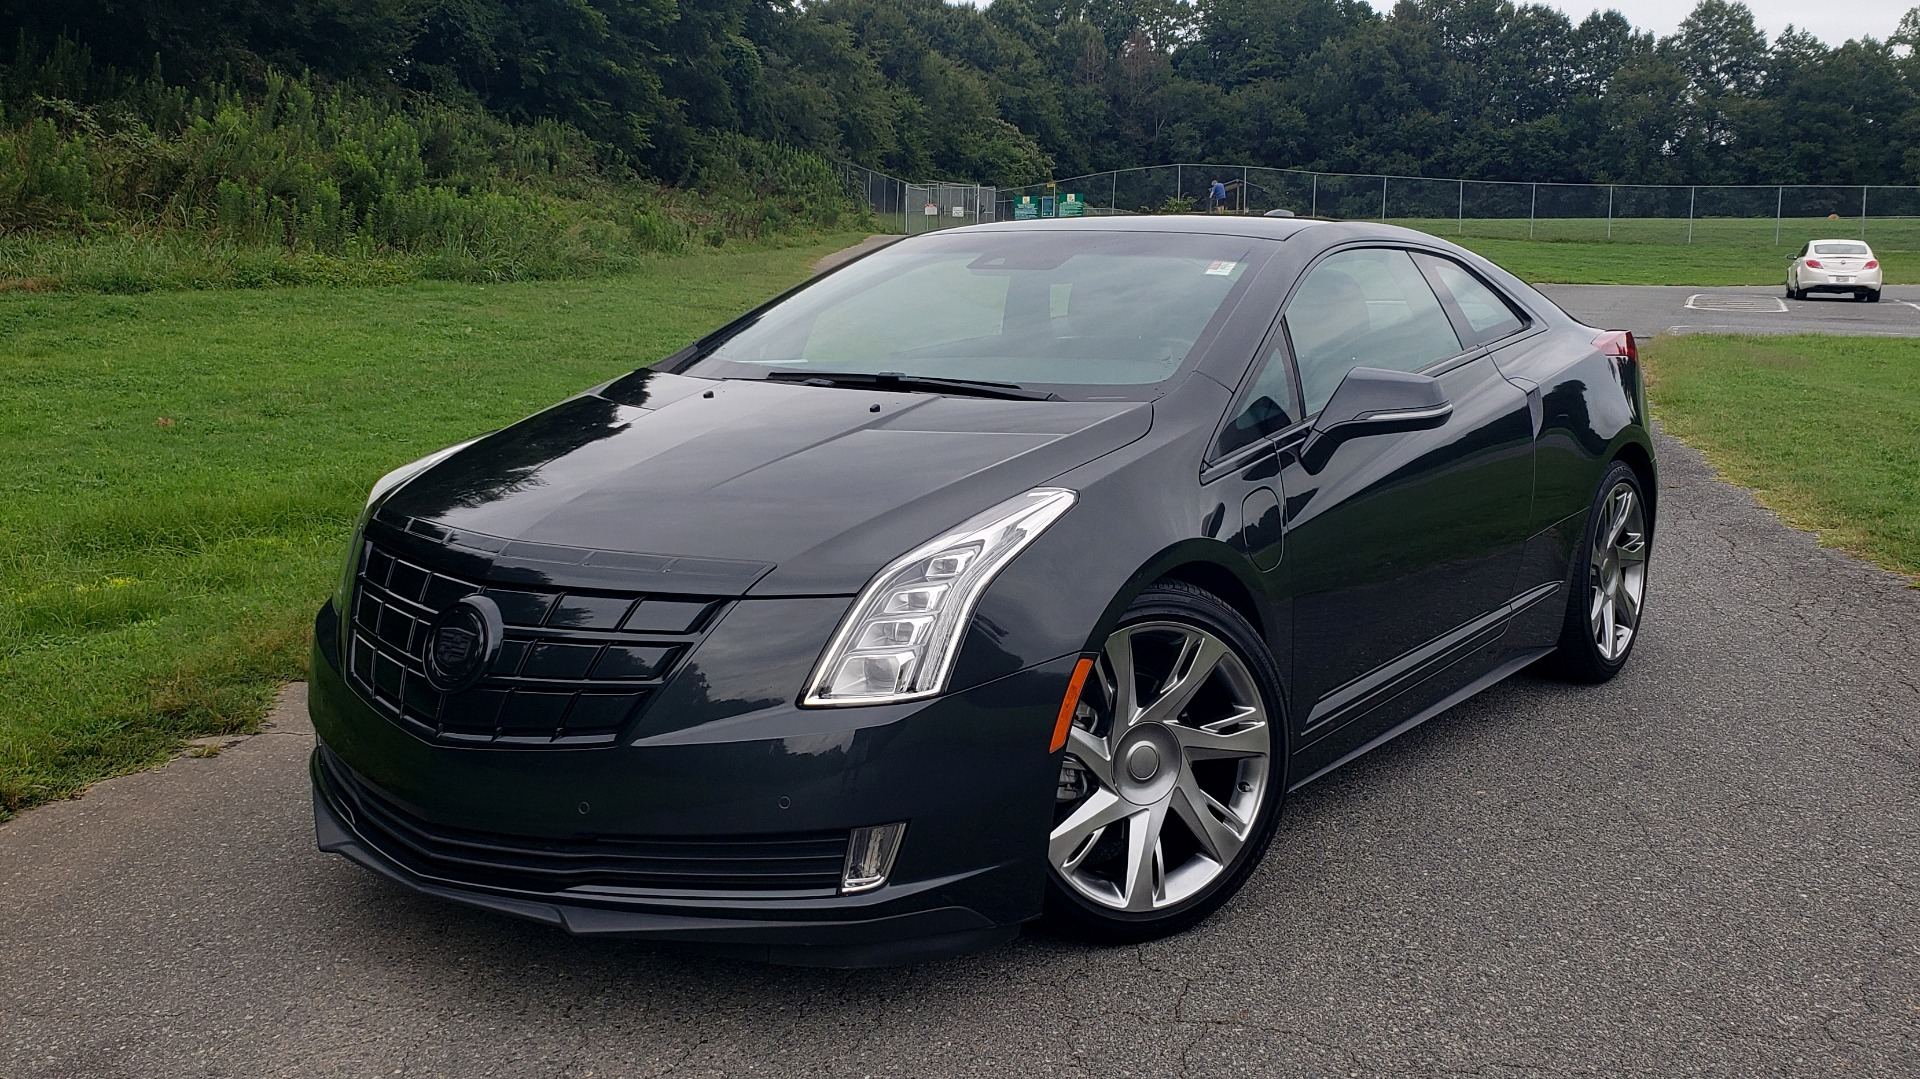 Used 2014 Cadillac ELR 2DR COUPE / HYBRID / NAV / BOSE / HEATED SEATS / REARVIEW for sale $34,000 at Formula Imports in Charlotte NC 28227 1